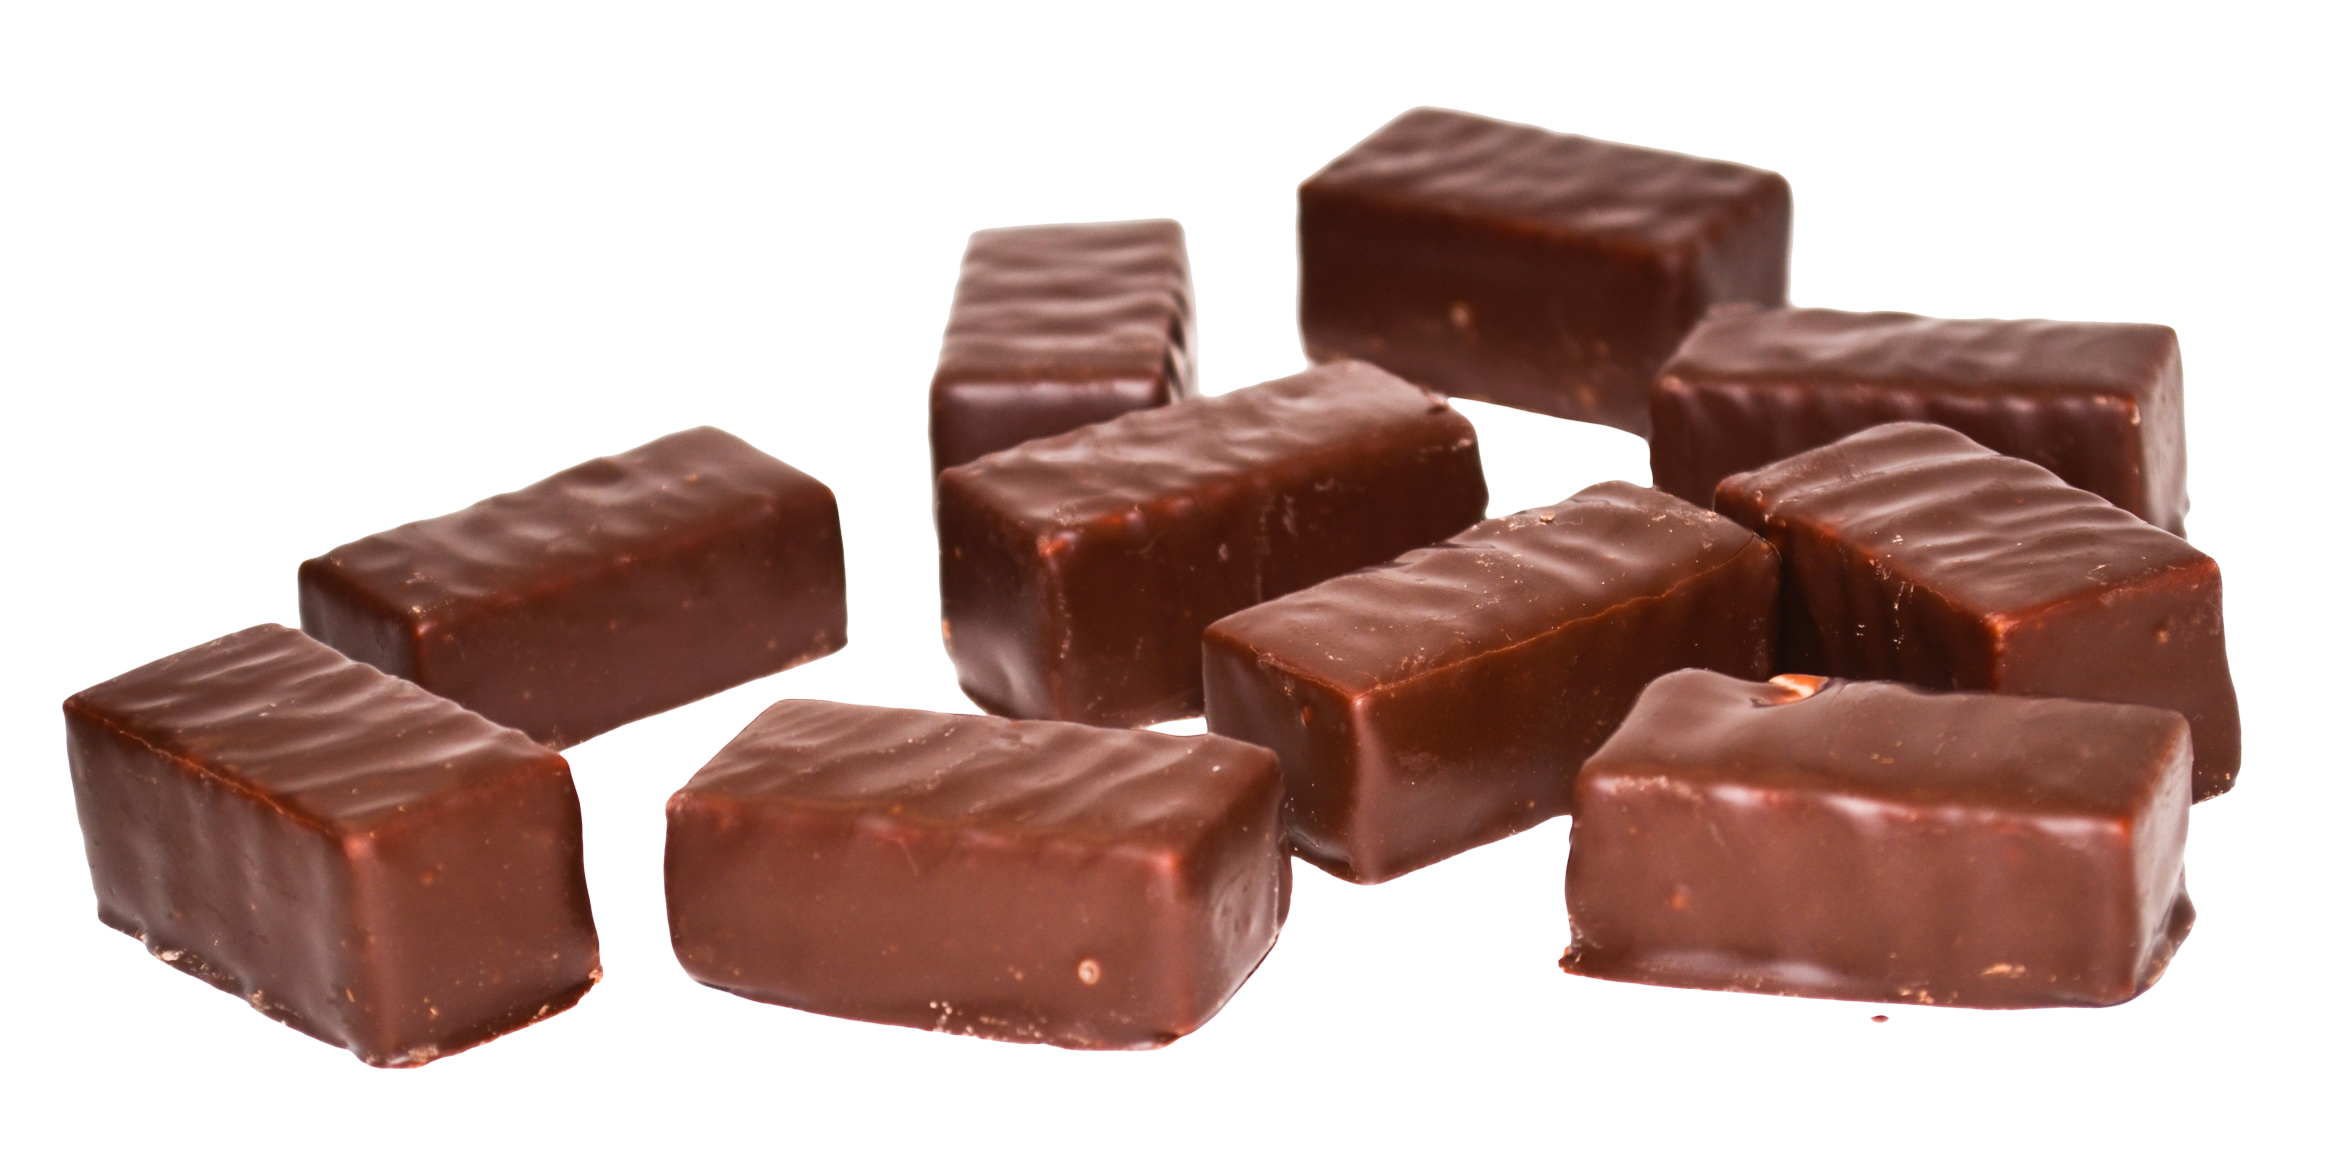 Chocolate PNG Image